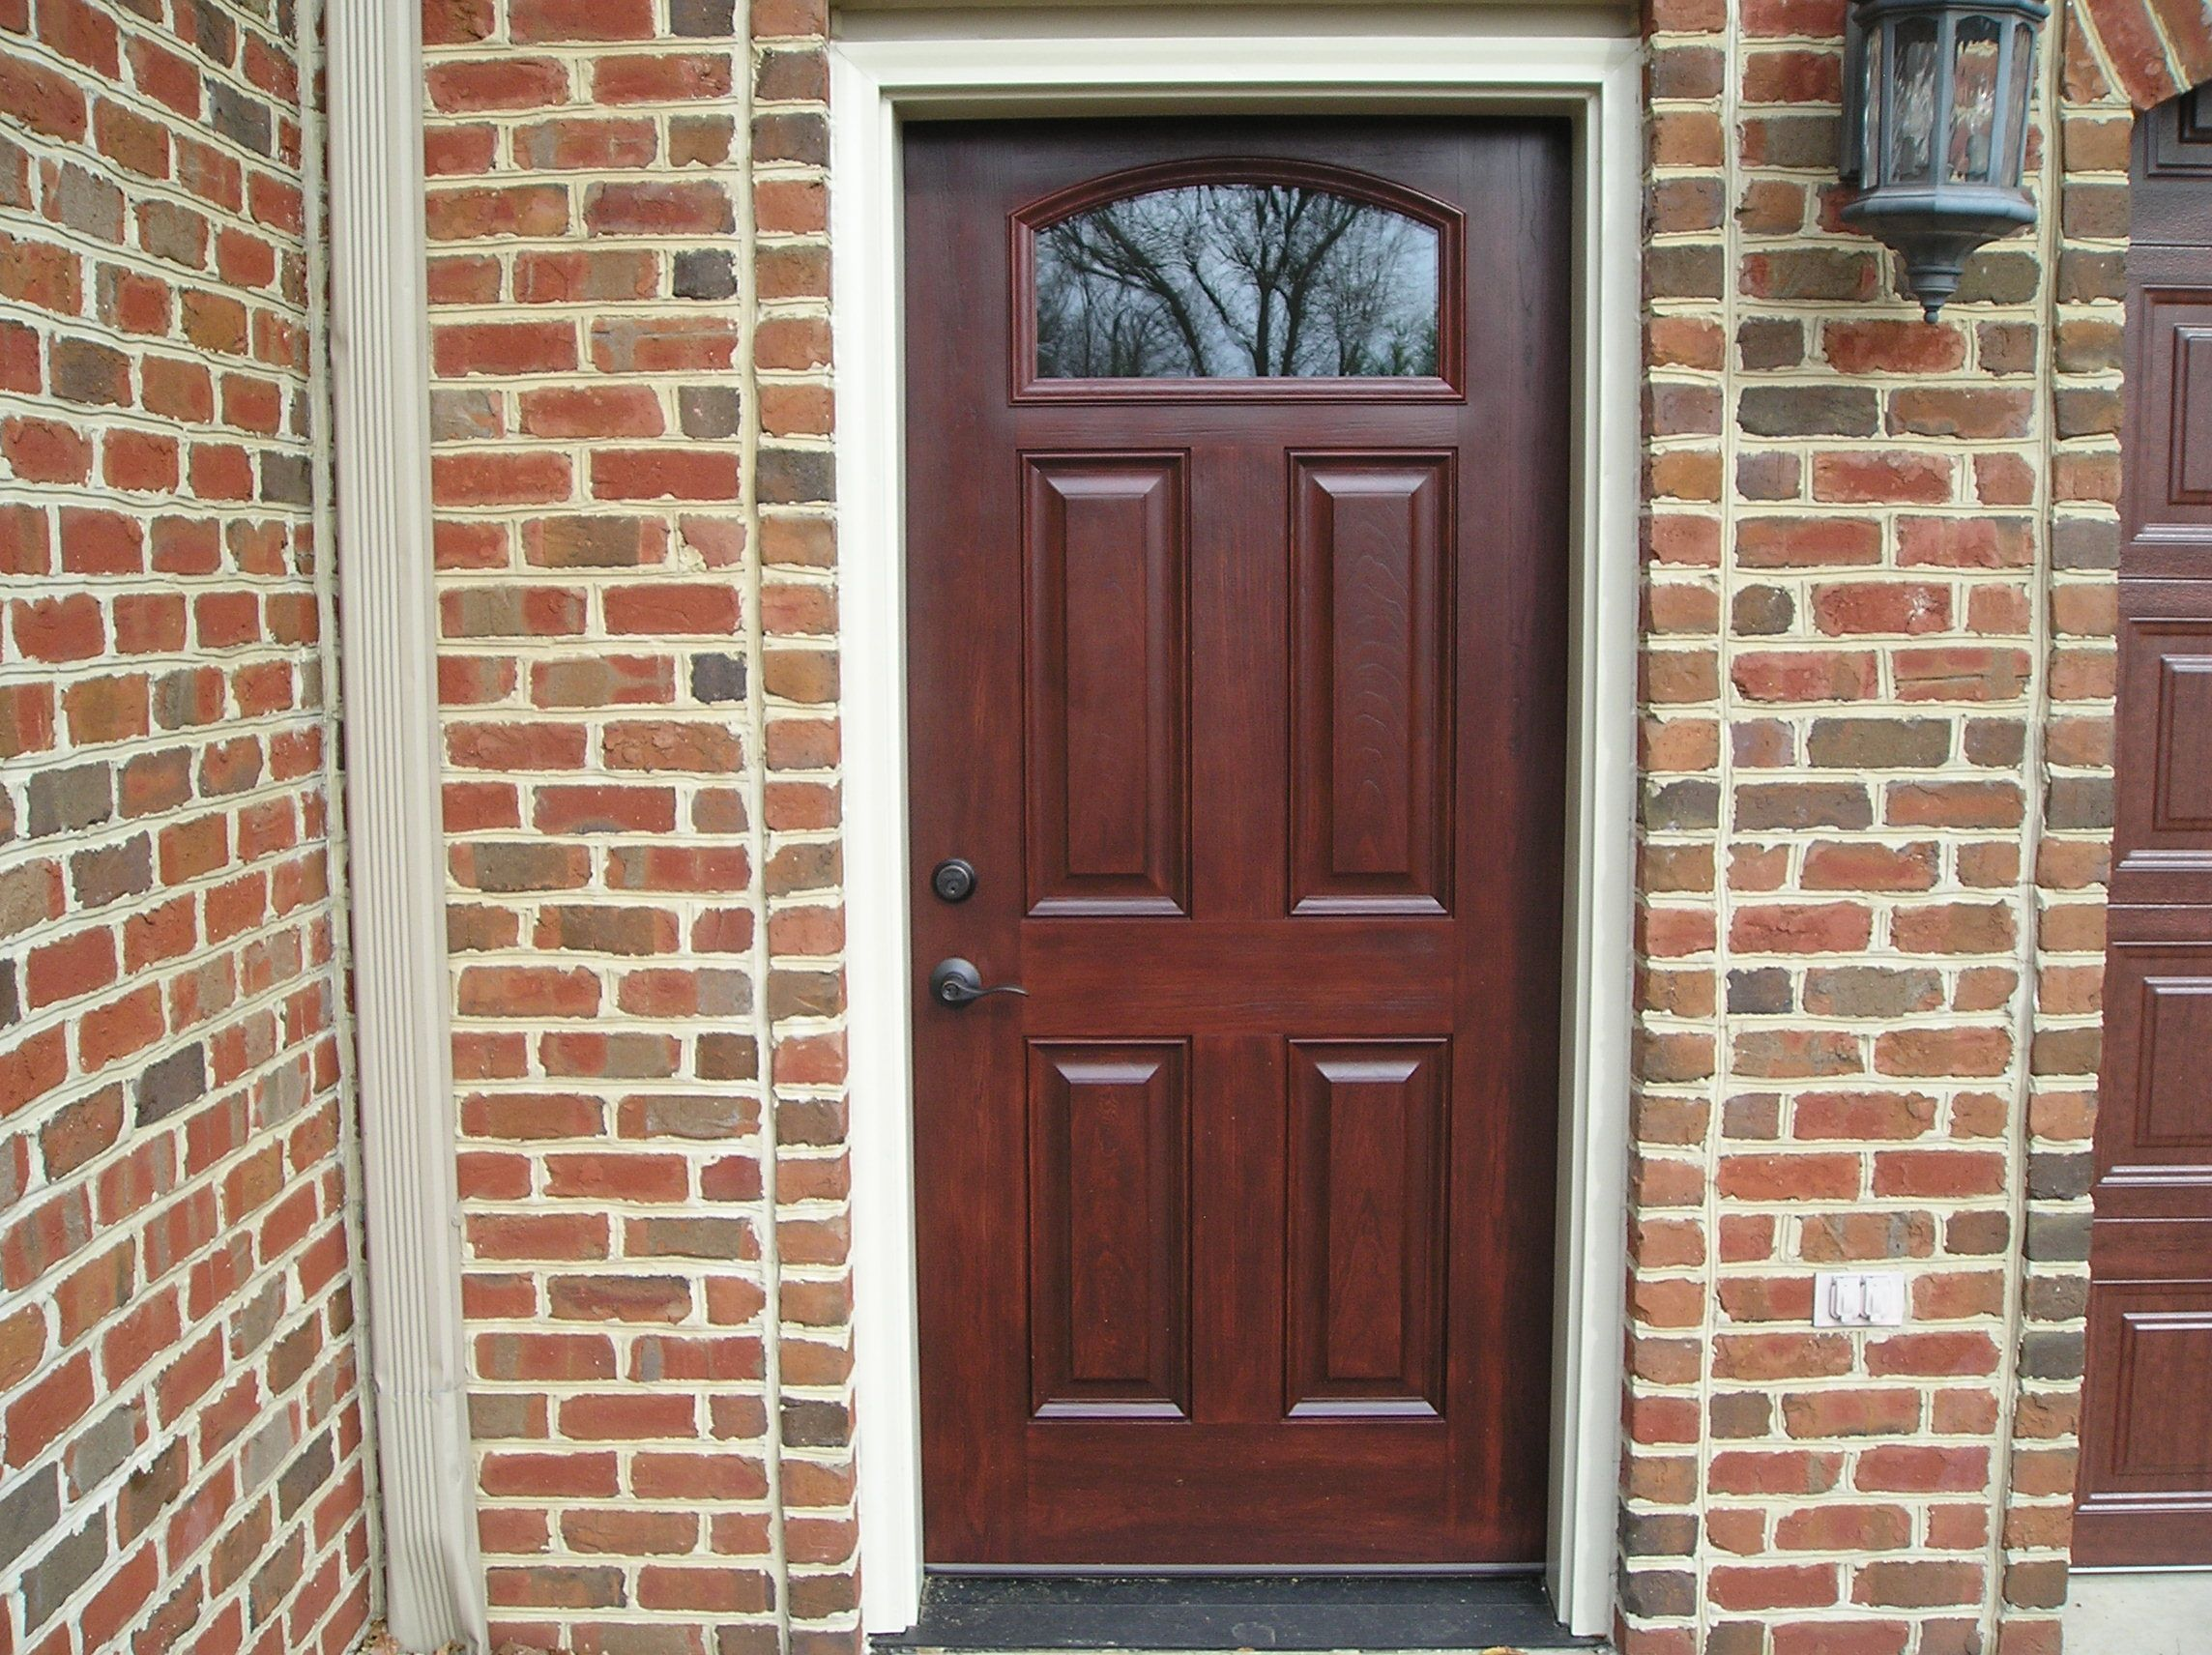 Provia Signet Fiberglass Entry Door In Cherry Provia Entry Doors In 2019